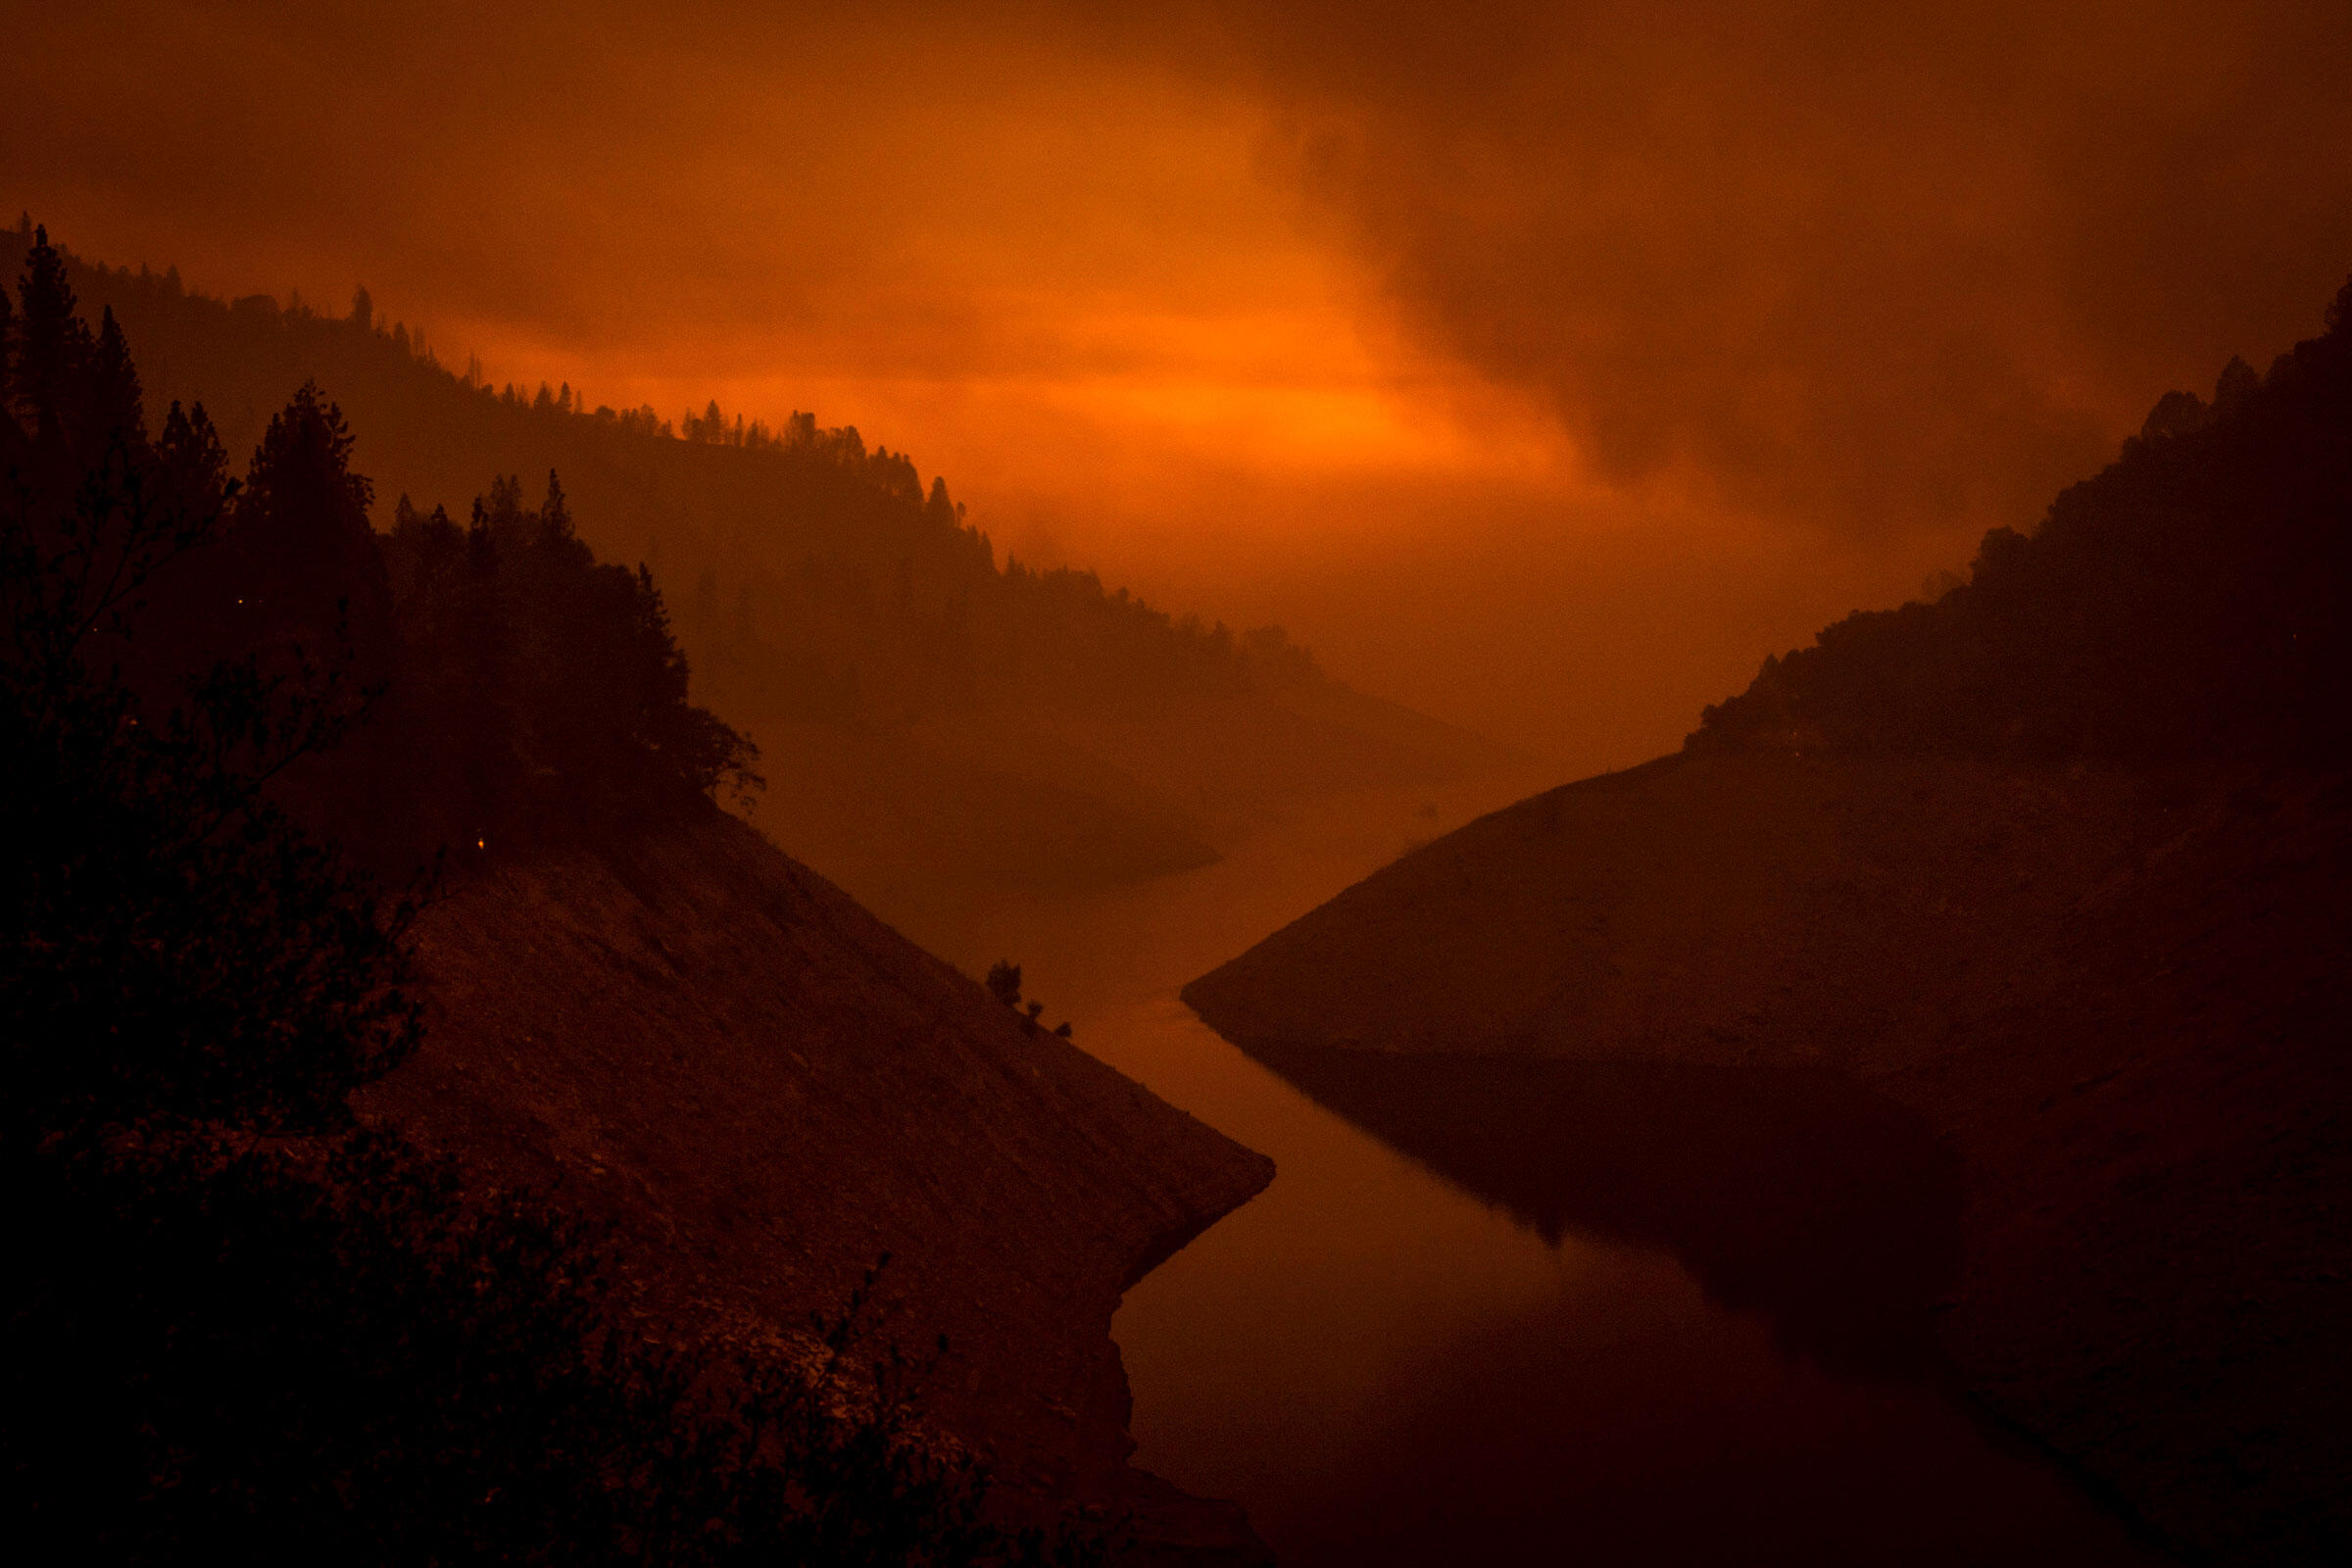 Looking over Lake Oroville after the Bear Fire, part of the North Complex Fire in Oroville, California, burned through on September 9th, 2020. Max Whittaker/The New York Times/Redux